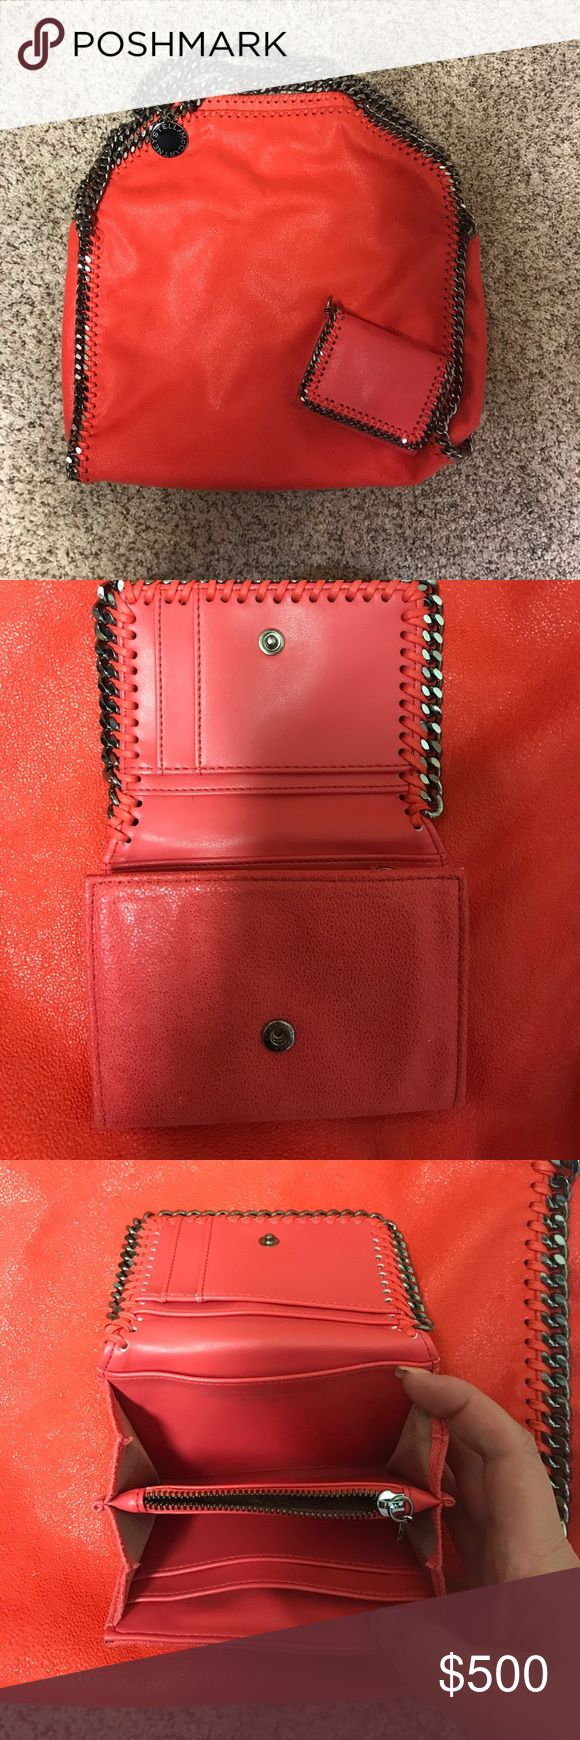 Stella McCartney Falabella with matching wallet I'm excellent used condition Stella McCartney Bags Shoulder Bags